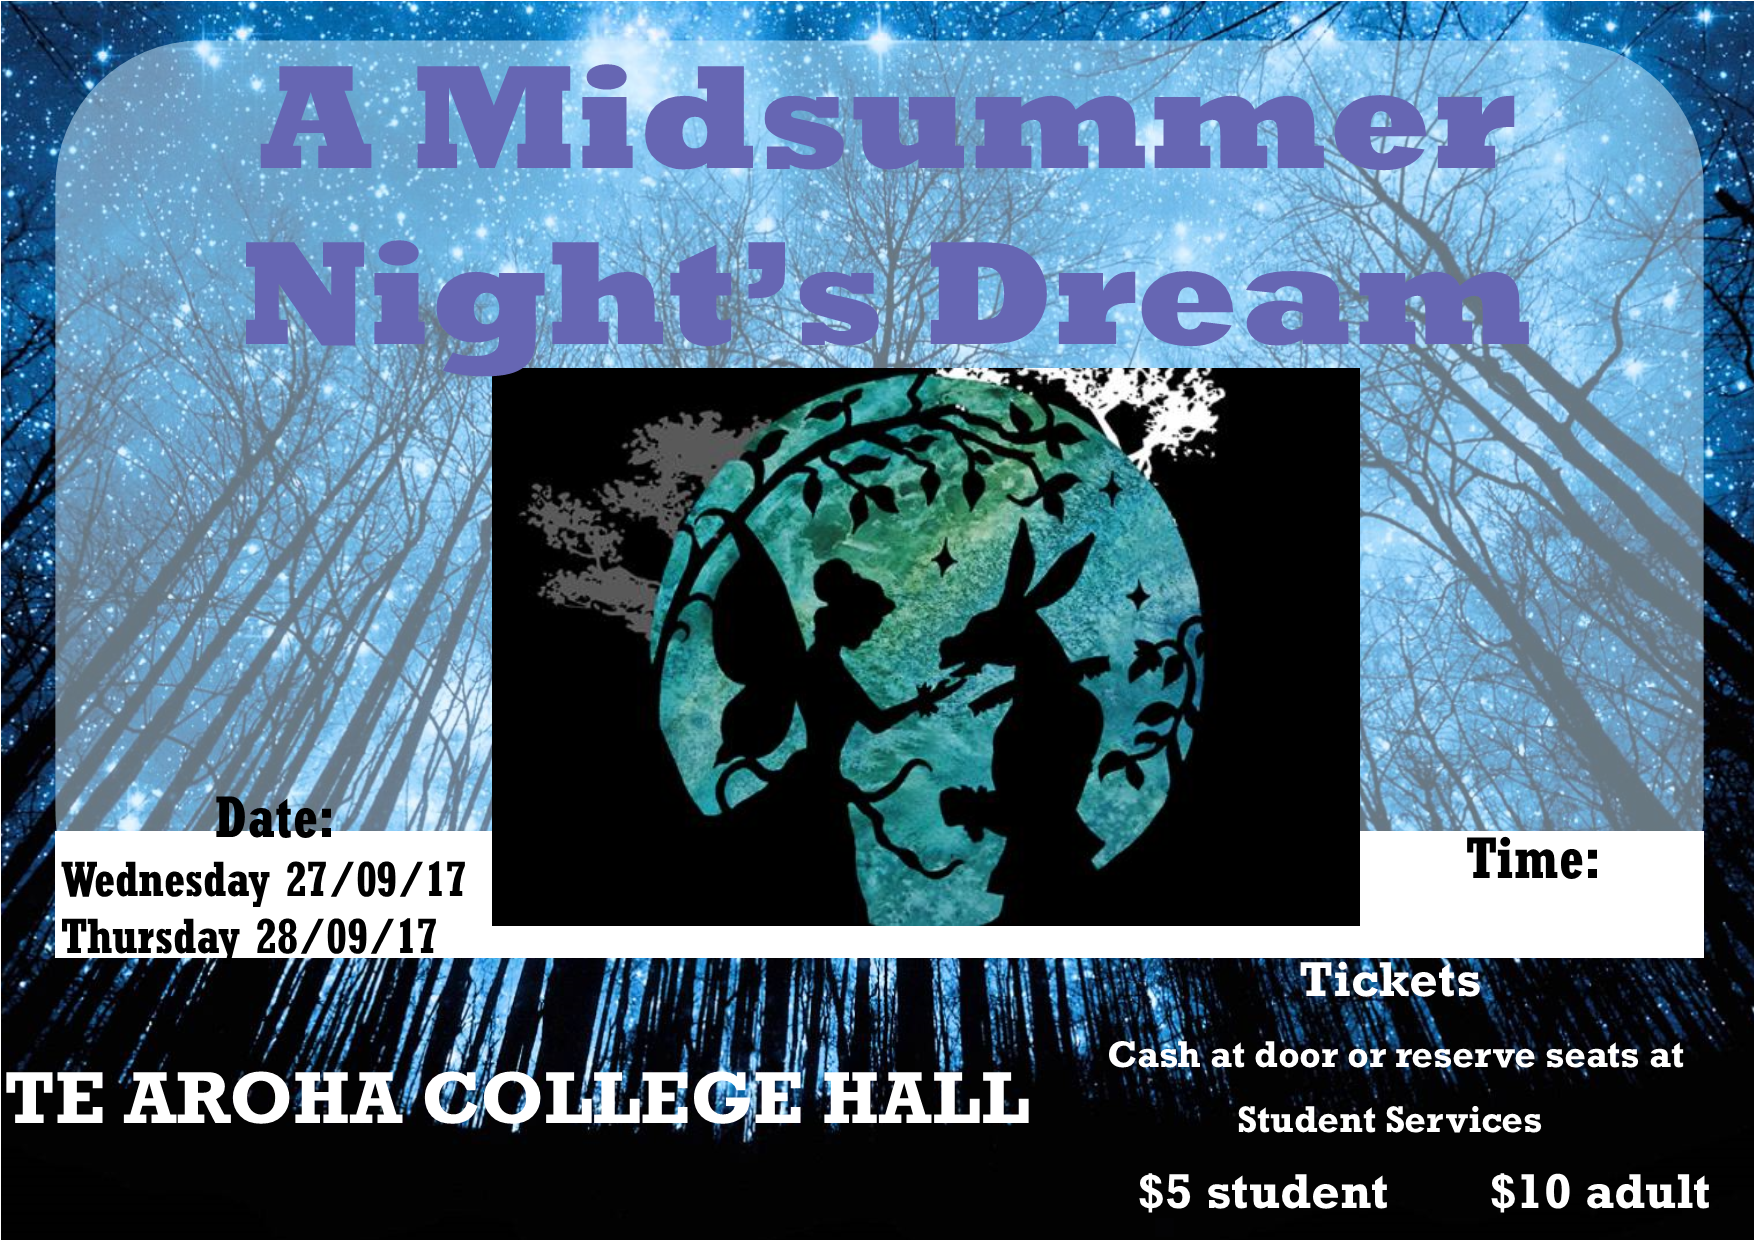 A Midsummer Night's Dream - School Production